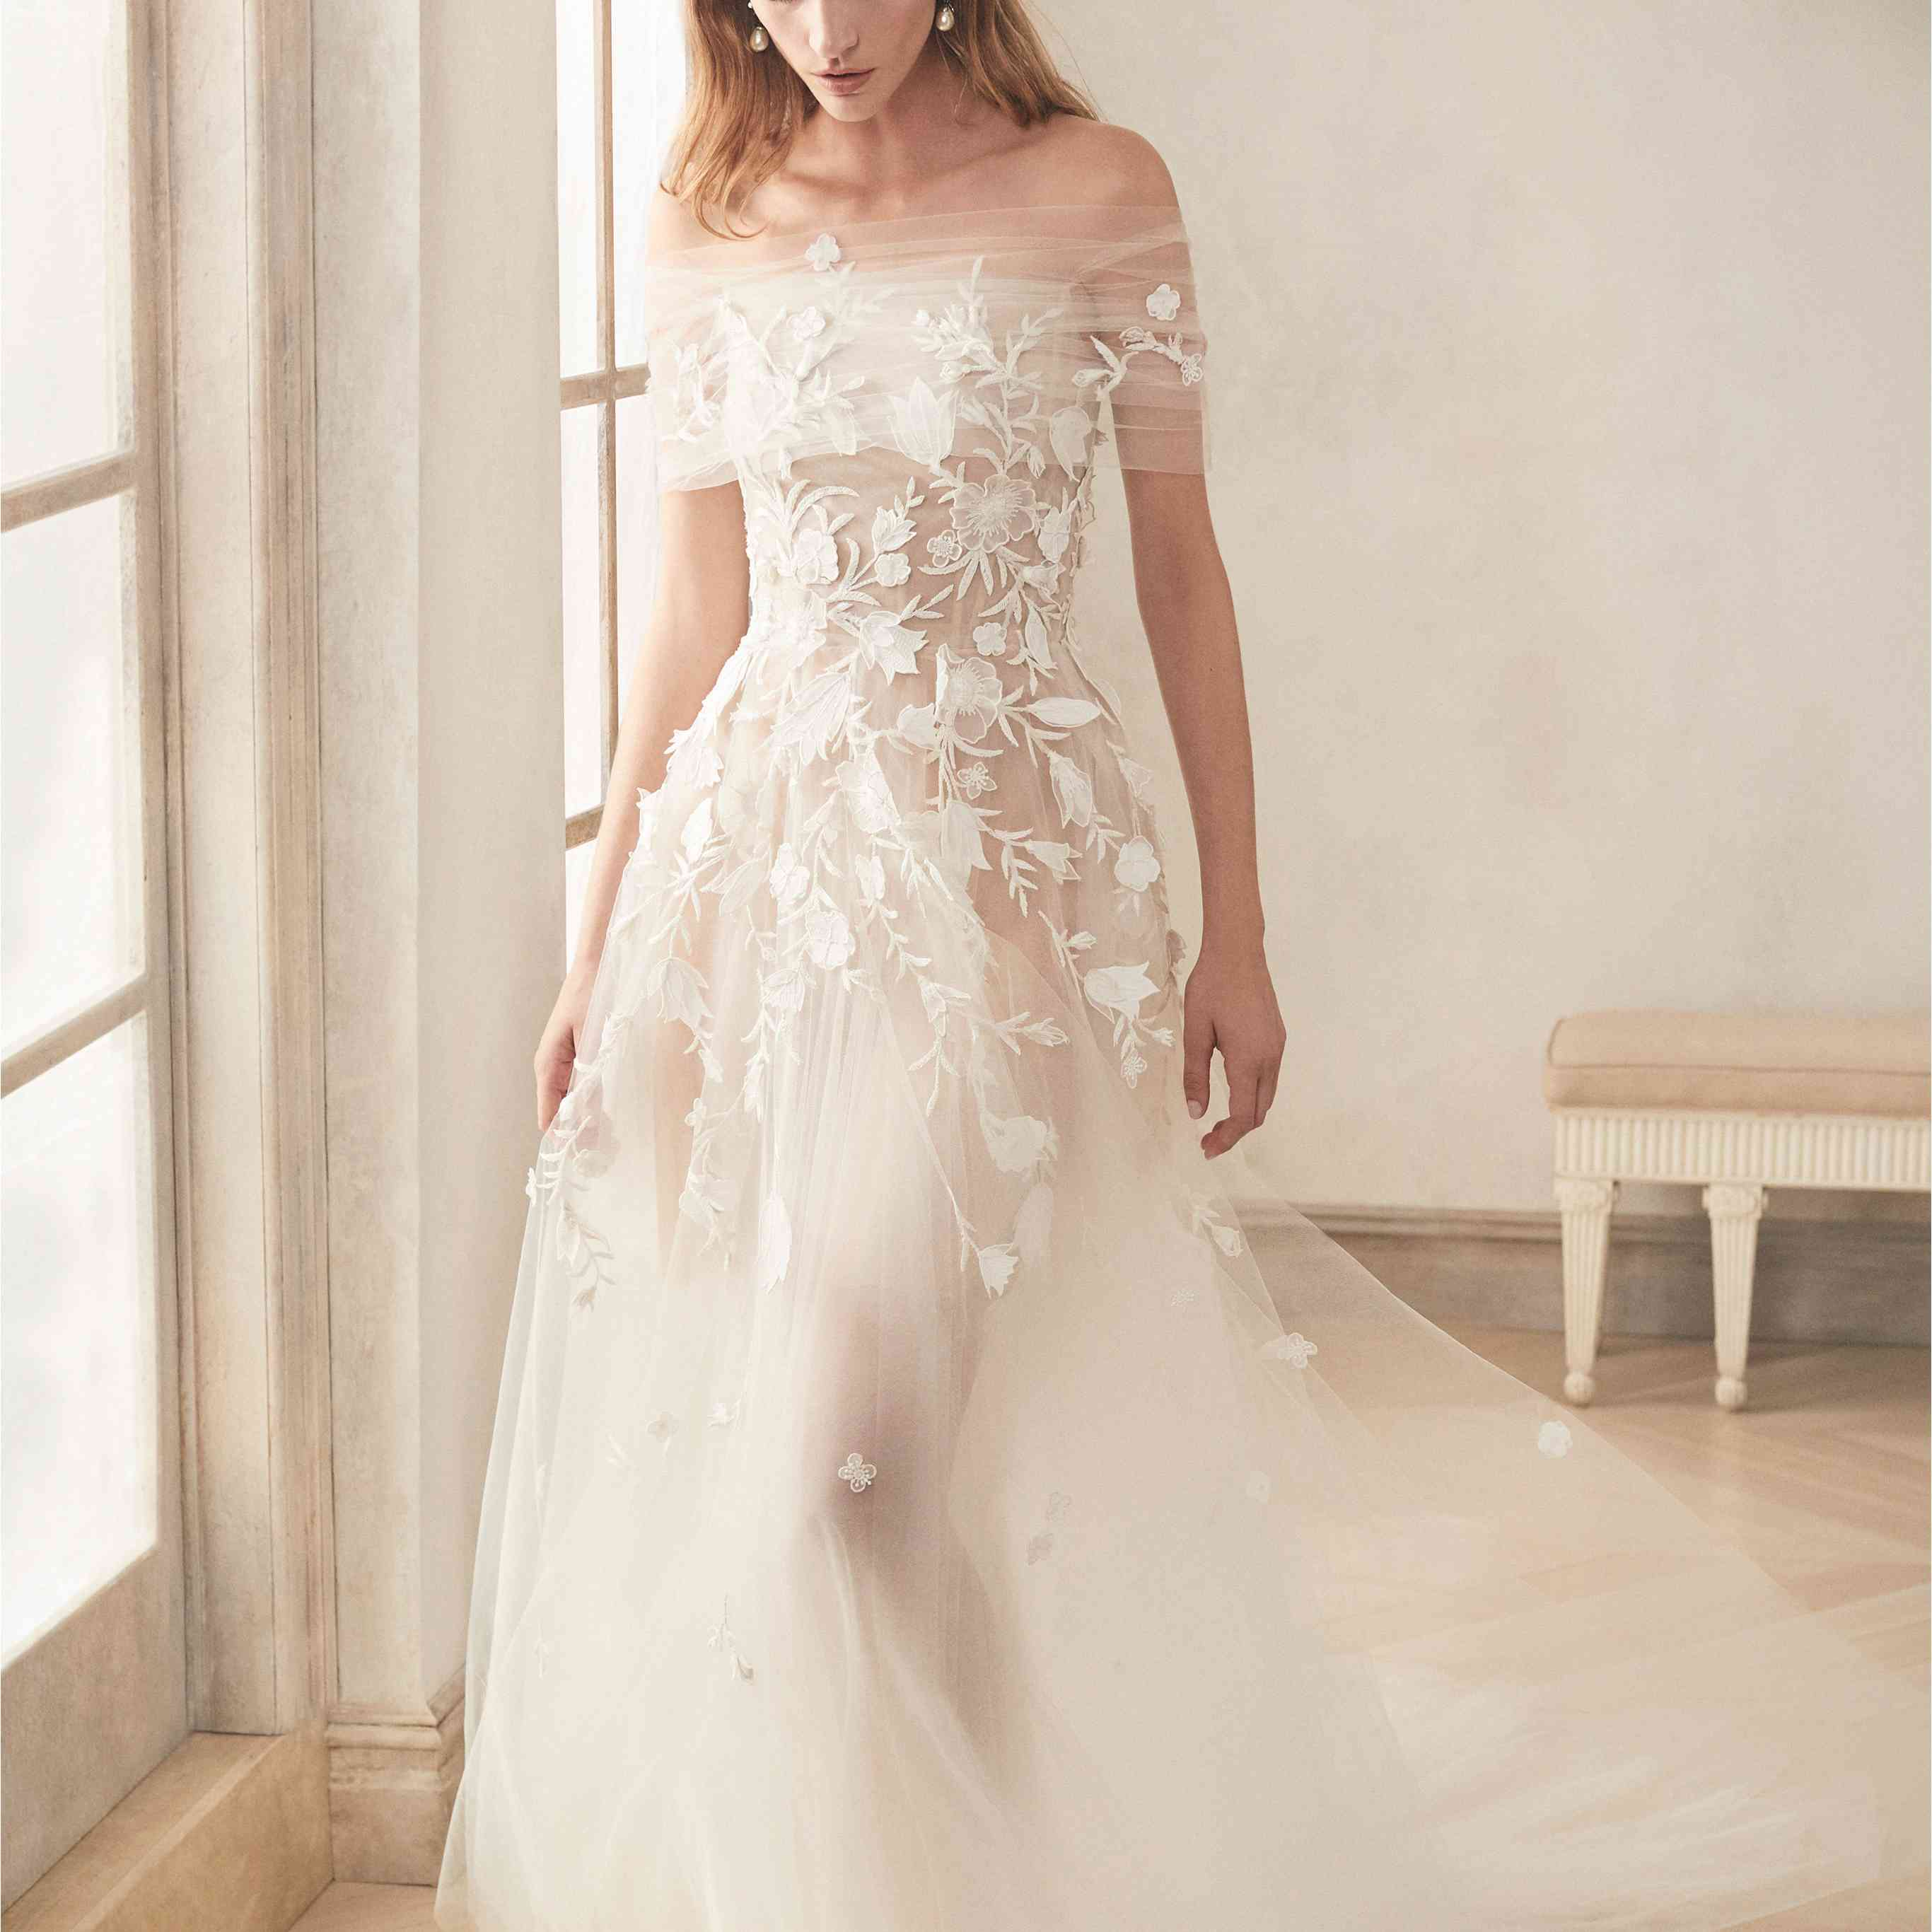 Model in sheet wedding gown with floral applique